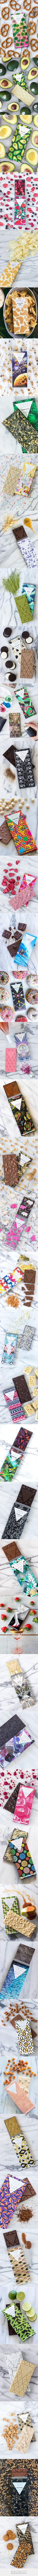 Premium Chocolate Bar Packaging by Compartes | Fivestar Branding Agency – Design and Branding Agency & Curated Inspiration Gallery